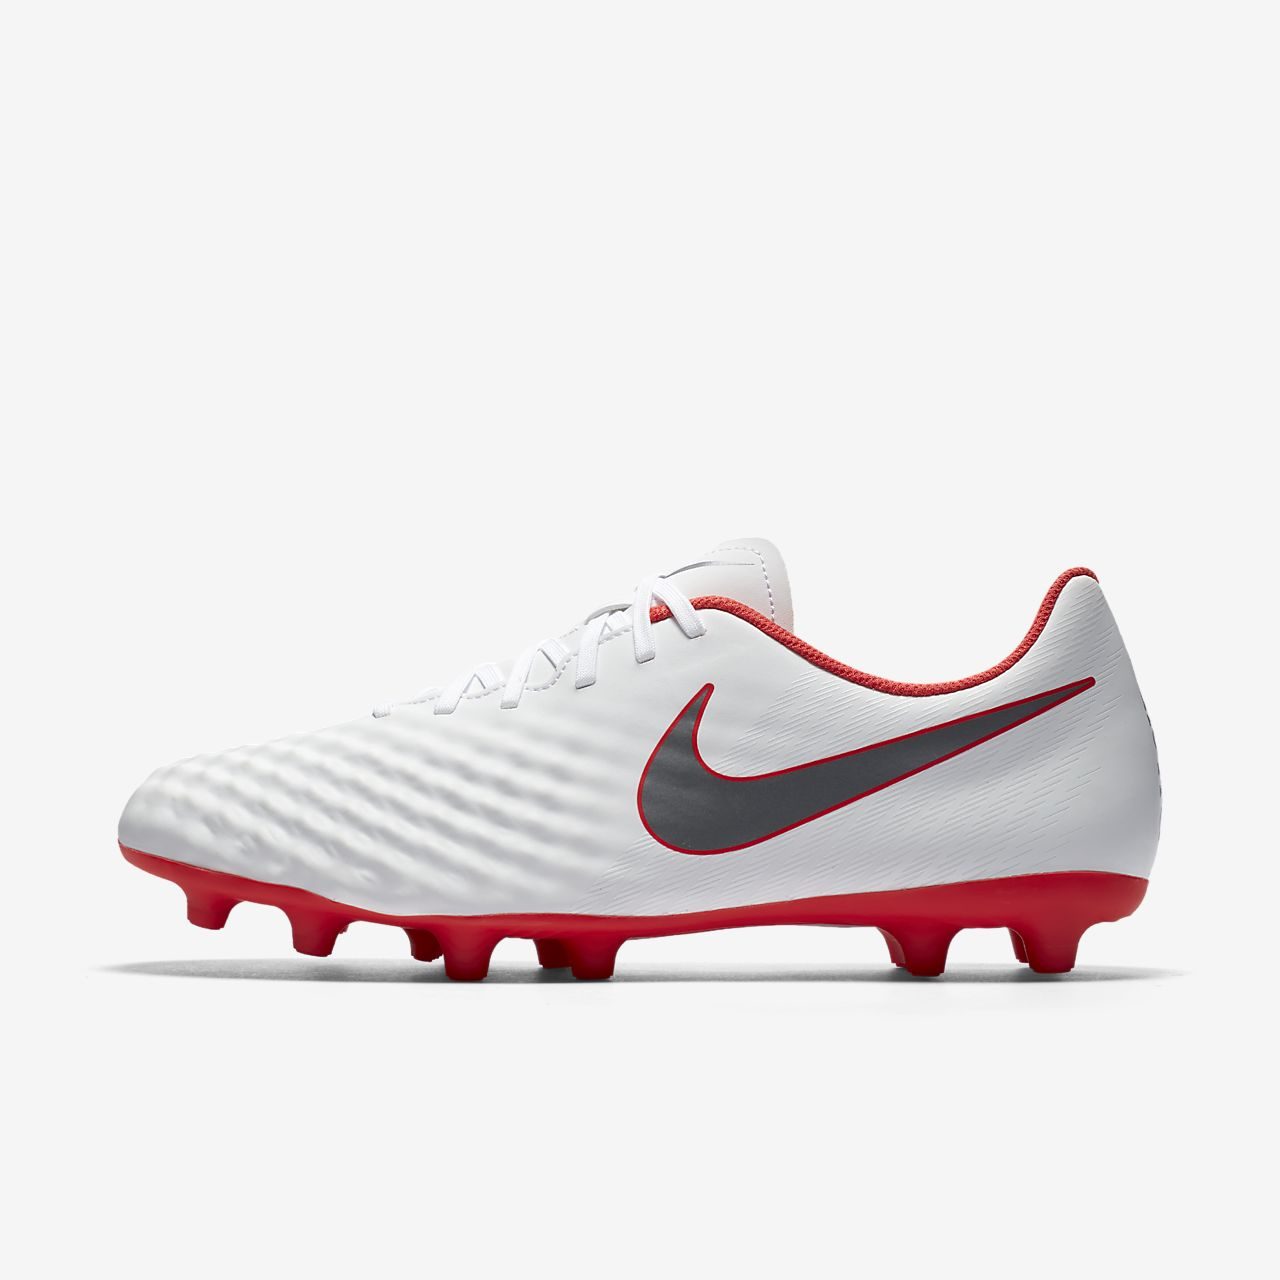 Nike Magista Obra II Club Firm-Ground Football Boot